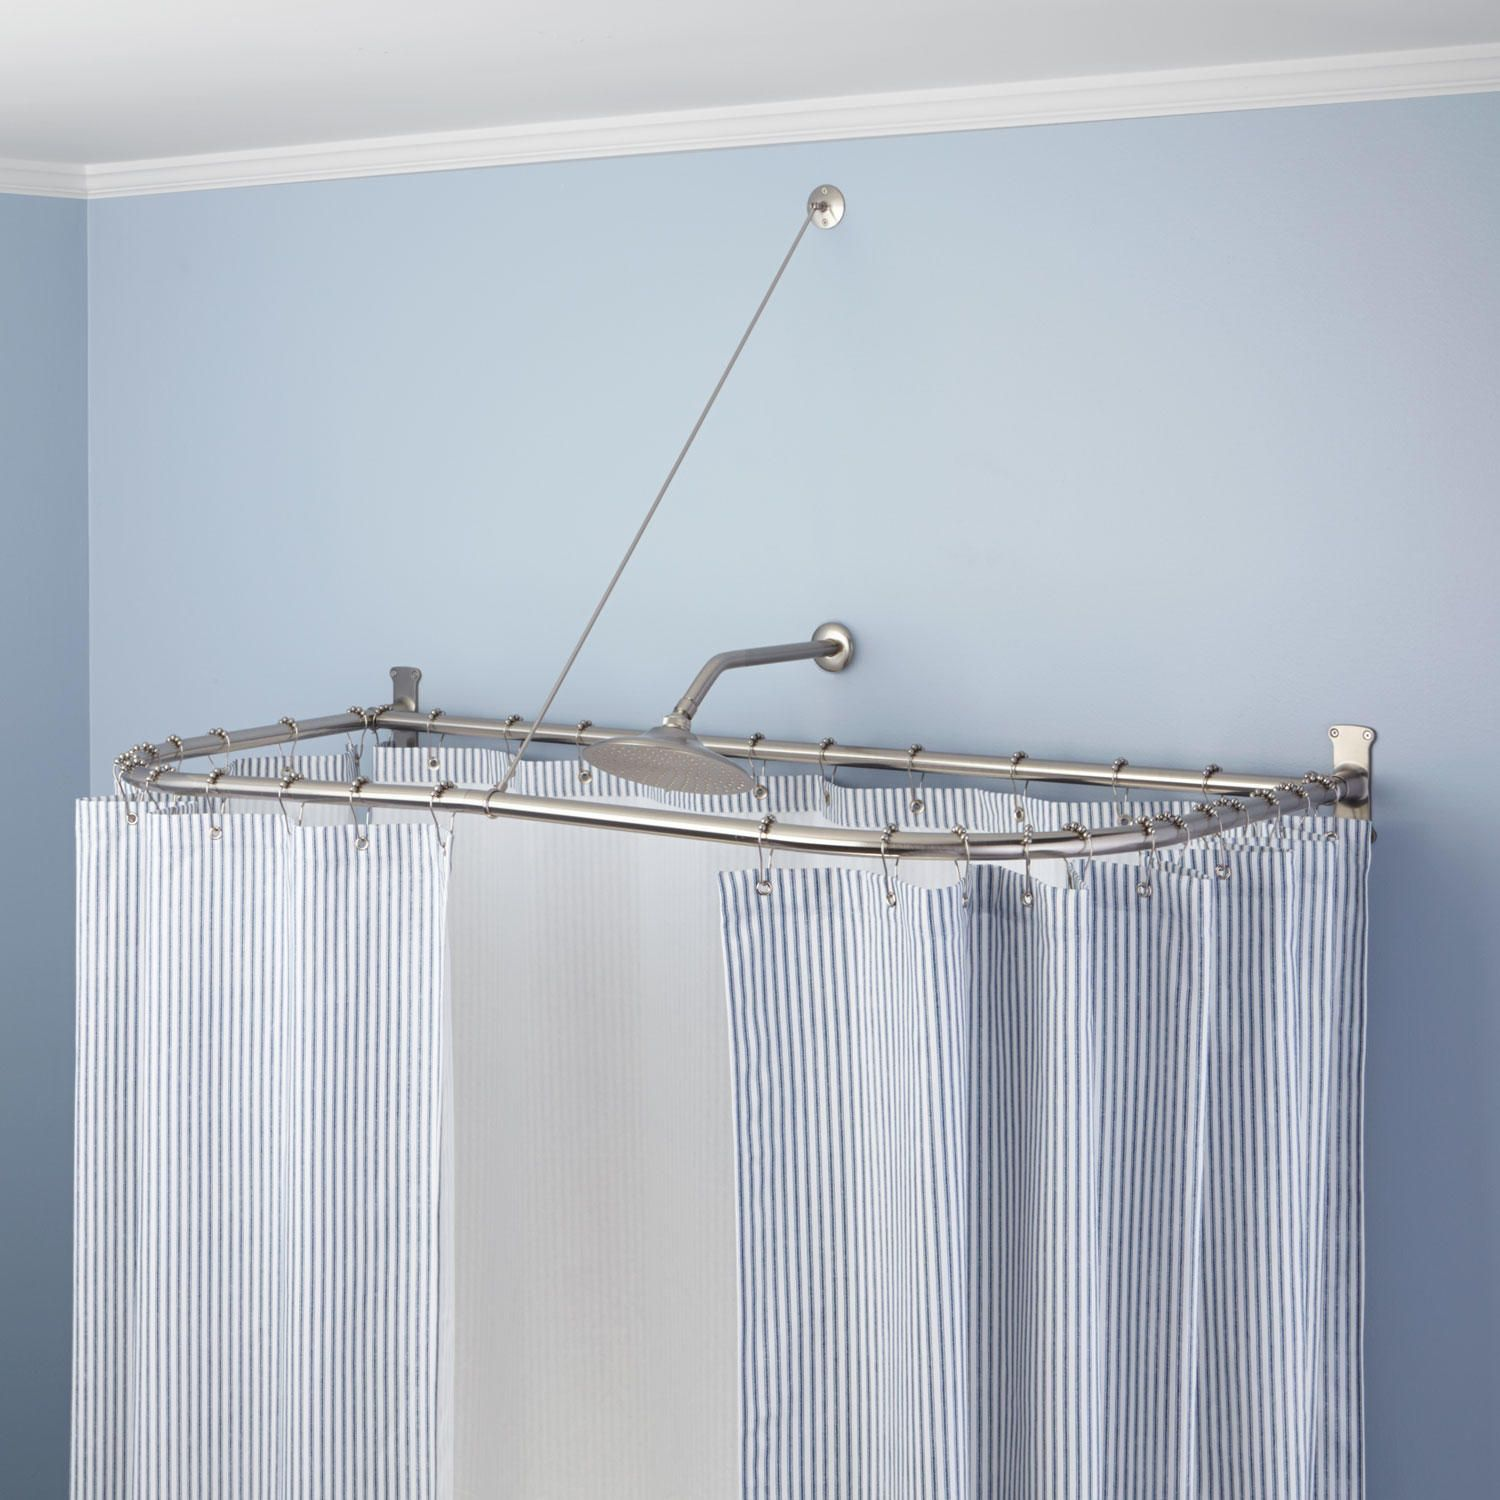 Easily Convert Your Double Ended Tub Into A Shower With The Side Mount Shower  Curtain Rod, Which Features Two Adjustable Ceiling Supports.